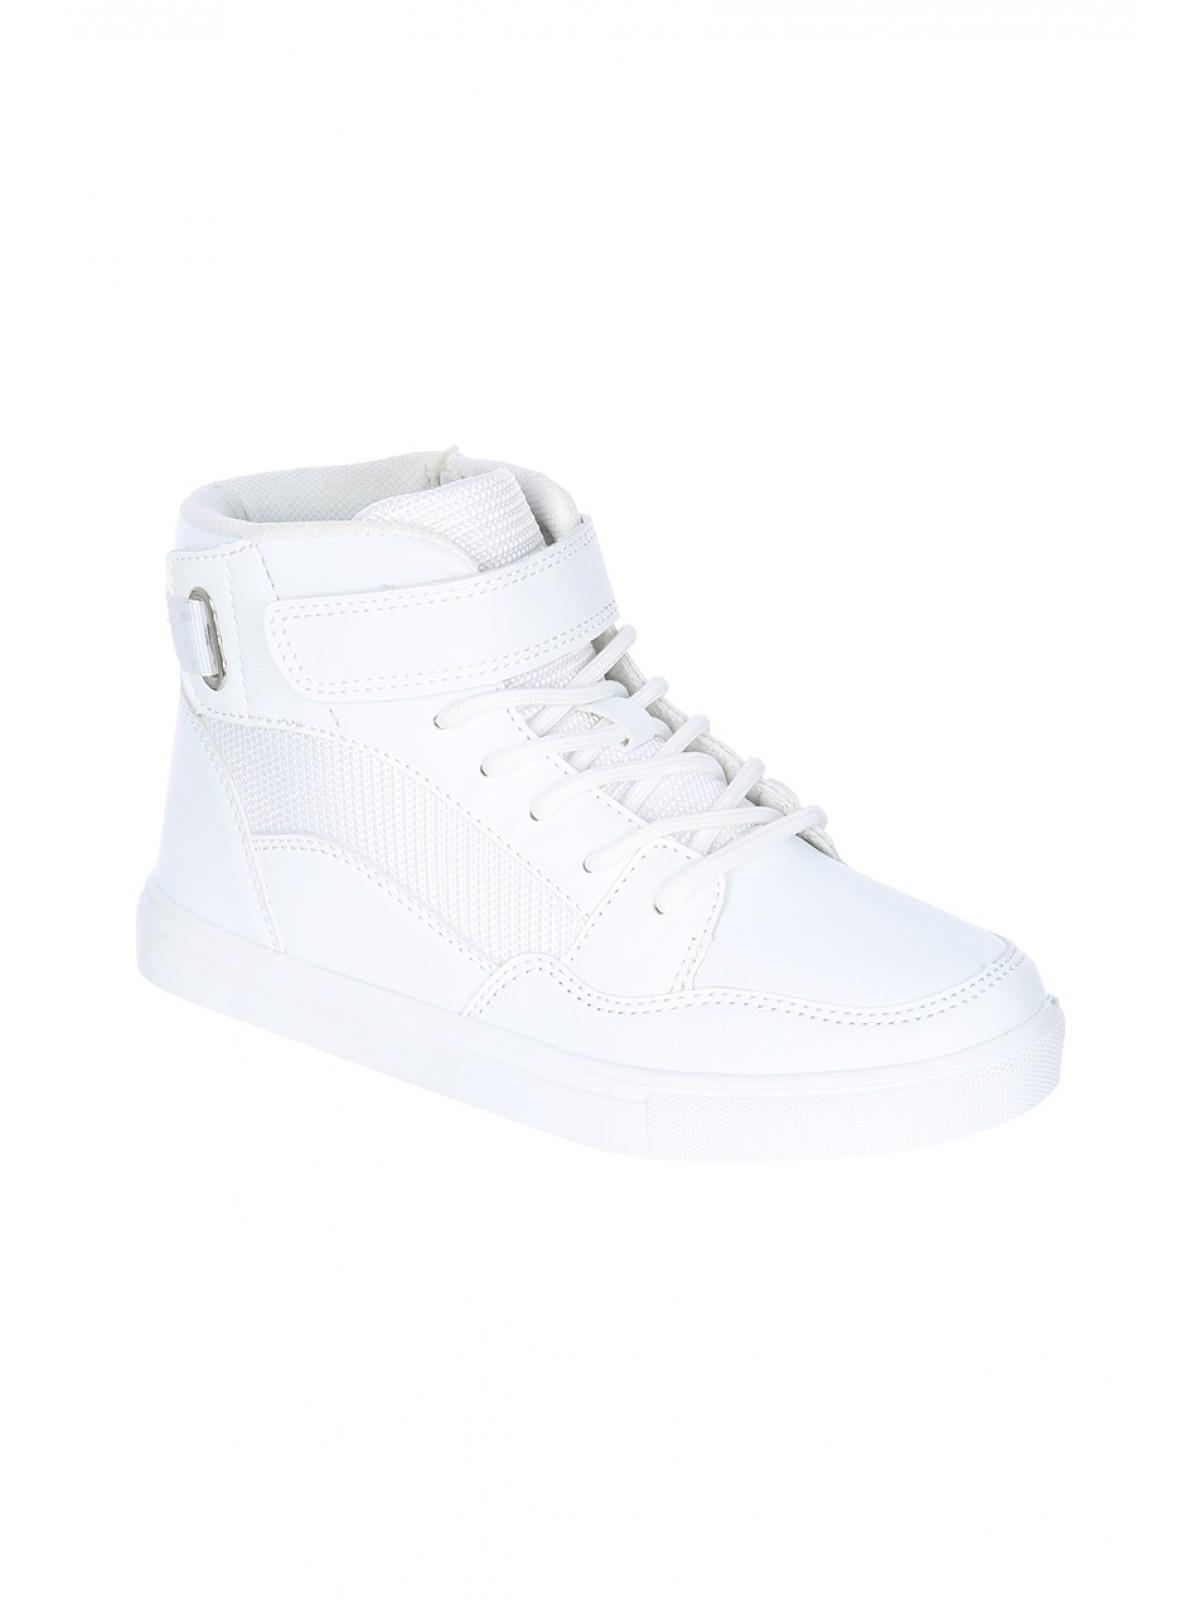 f07bfa6d6e099 Home; Older Boys White Velcro High Top Trainers. Back. PreviousNext